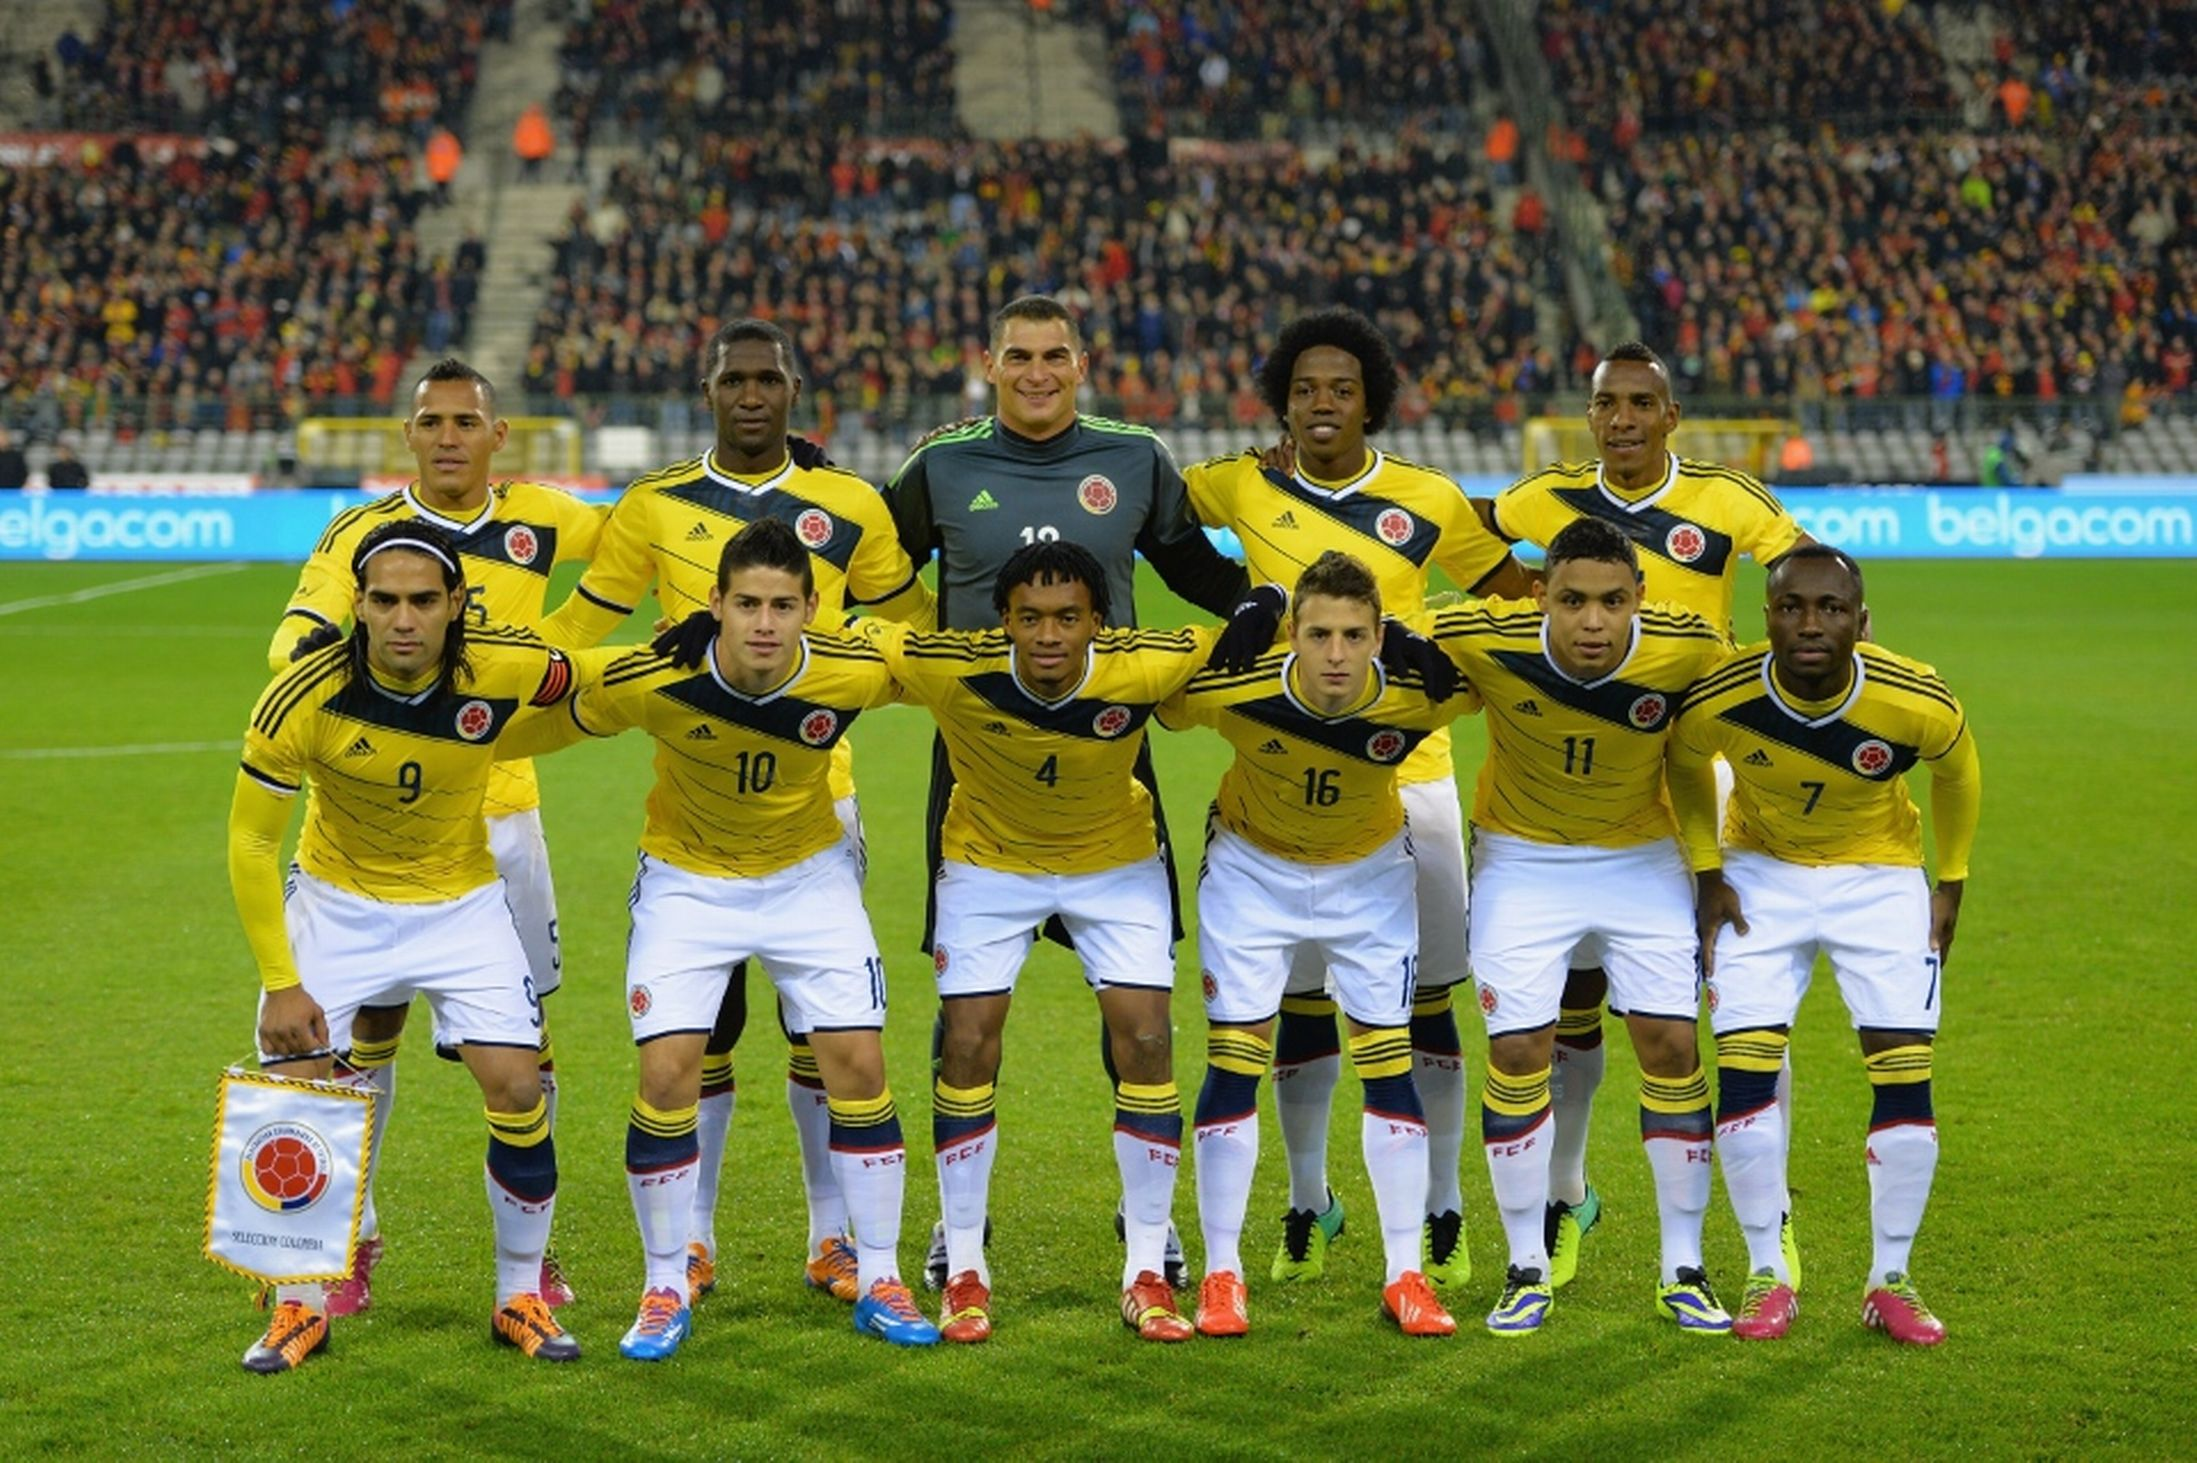 2014 Fifa World Cup Teams Wallpapers Download in Many size ...